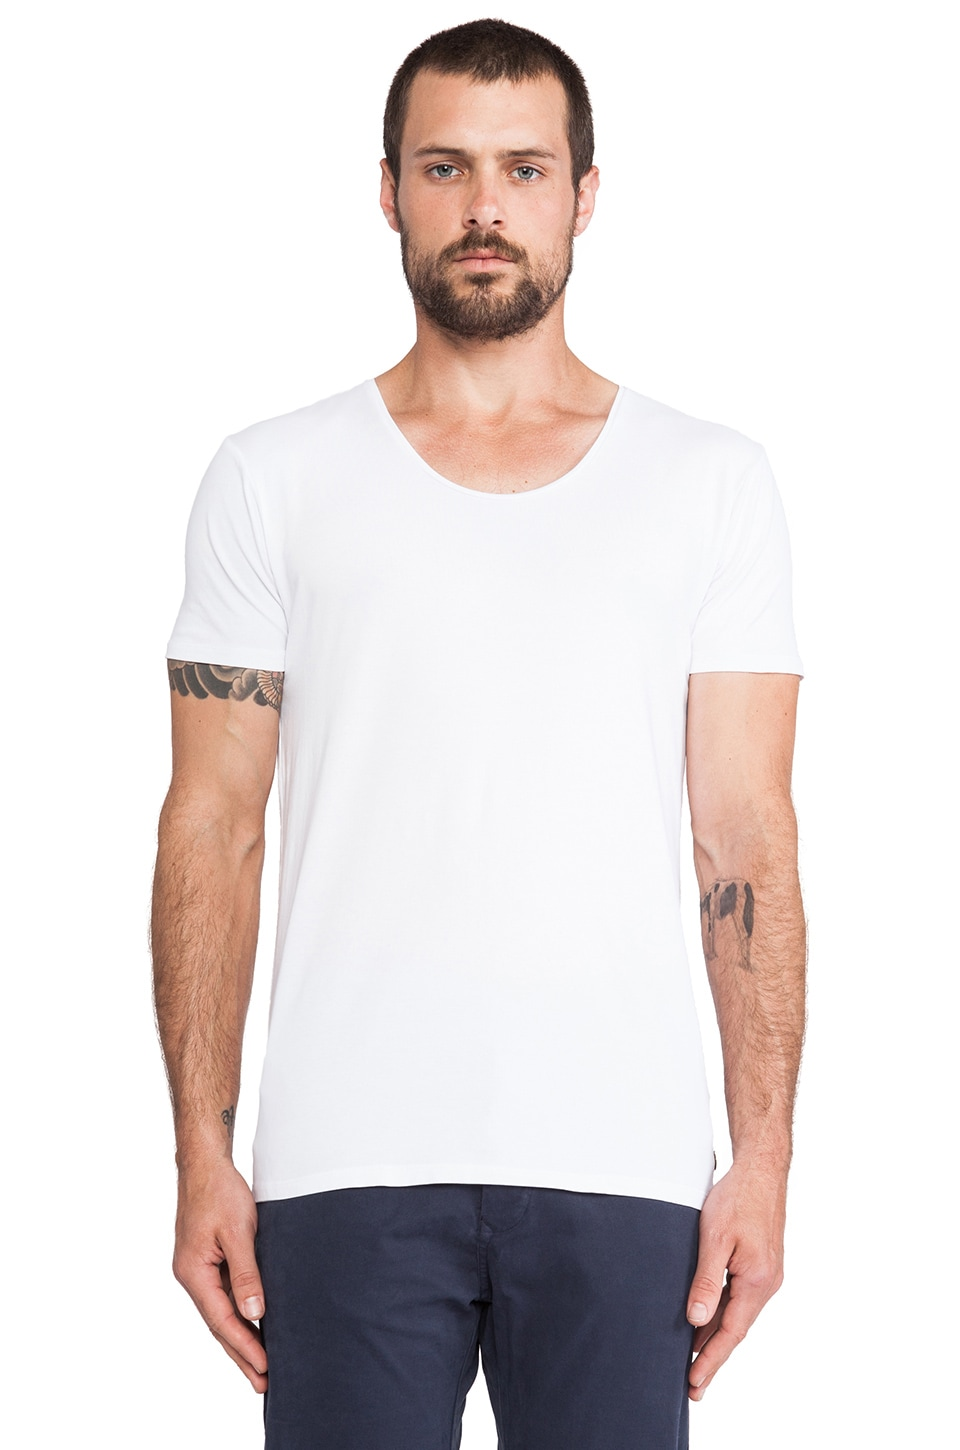 Scotch & Soda Basic Crewneck Tee in White